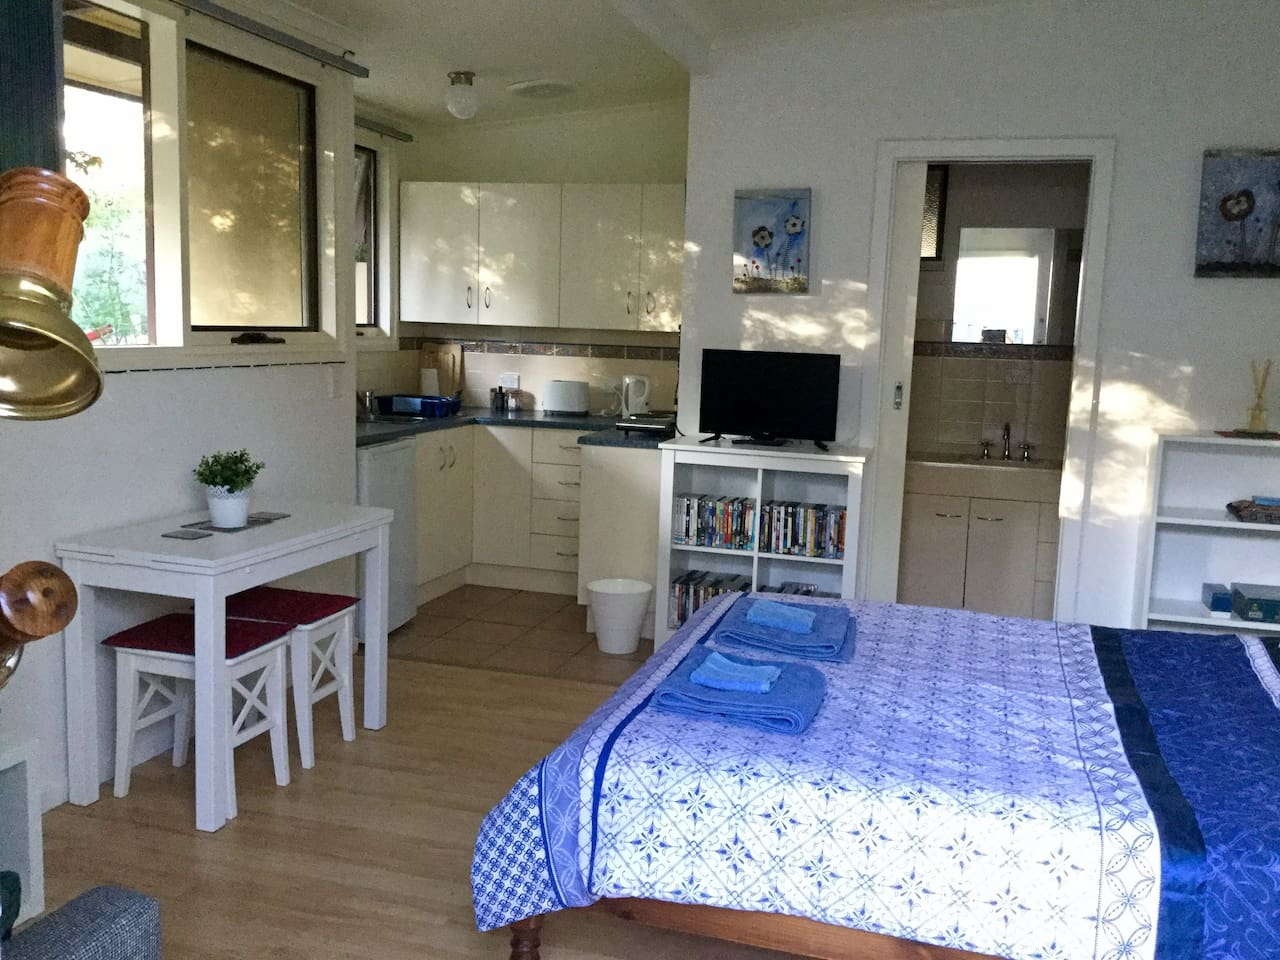 Kitchenette, ensuite, TV, DVD library